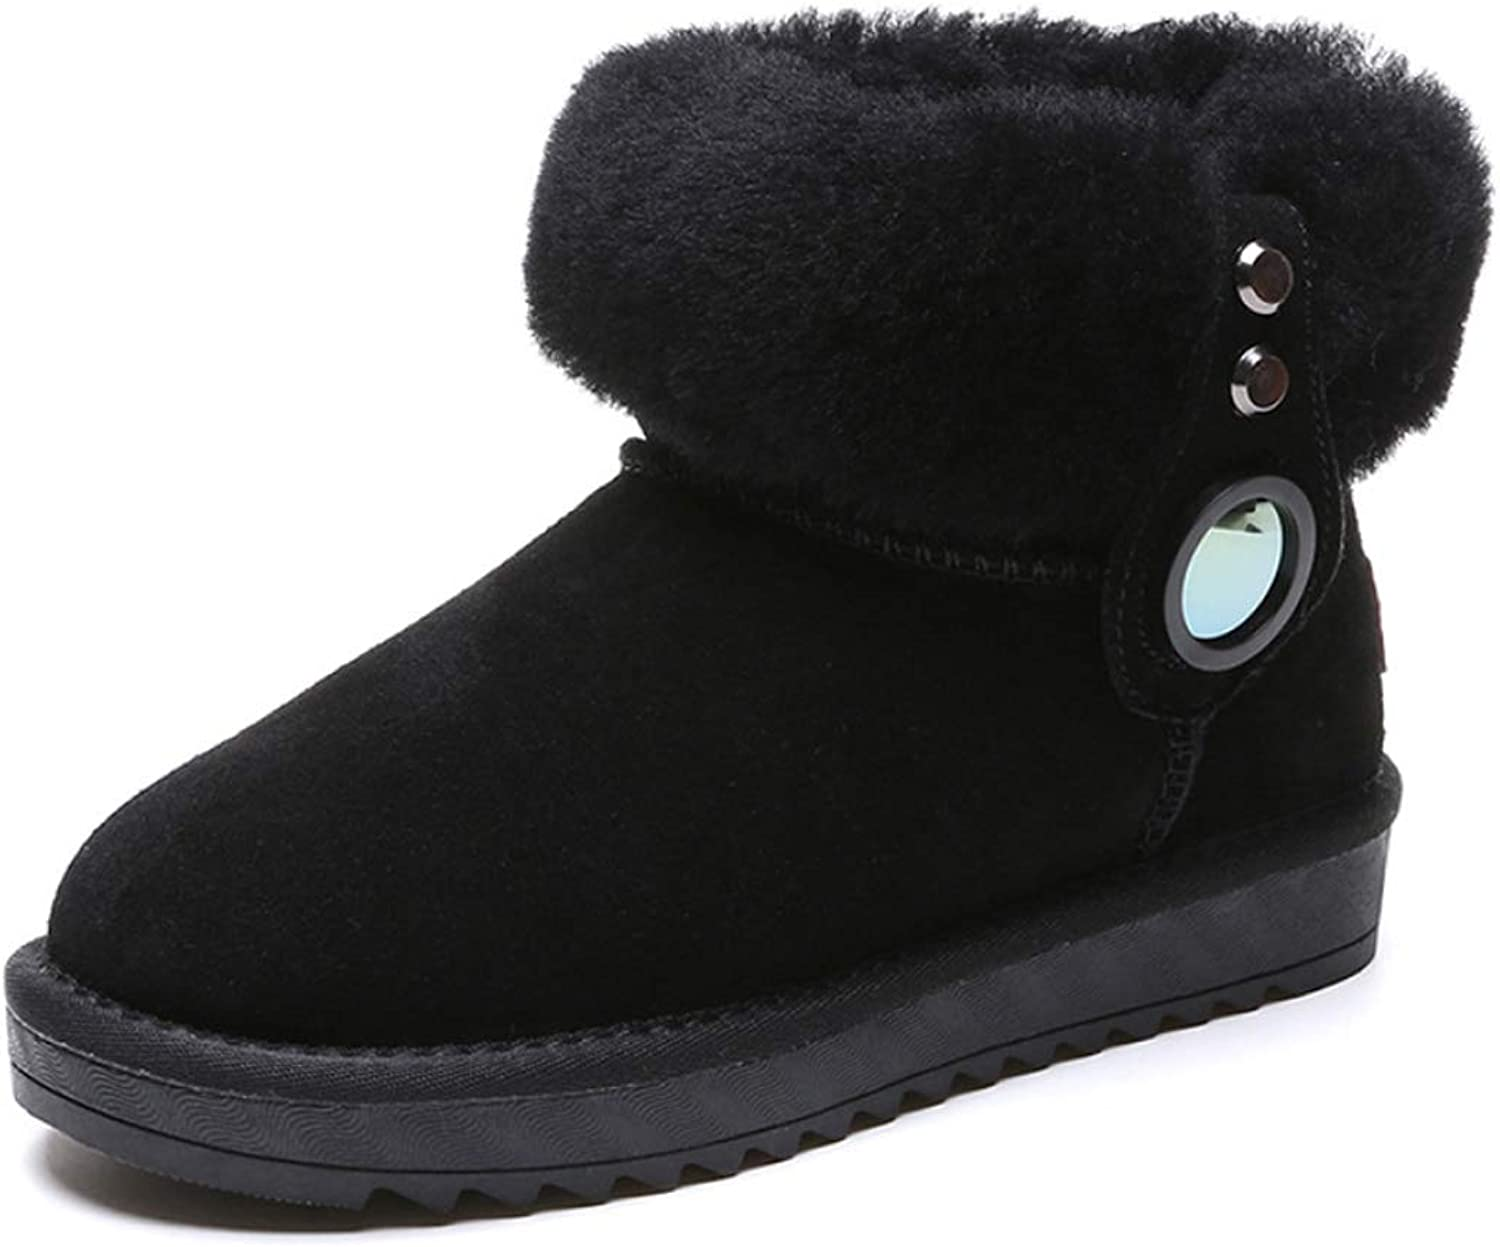 Boots for Women Cute Flat Heel Snow Boots with Non-Slip Ankle Boots shoes for Winter